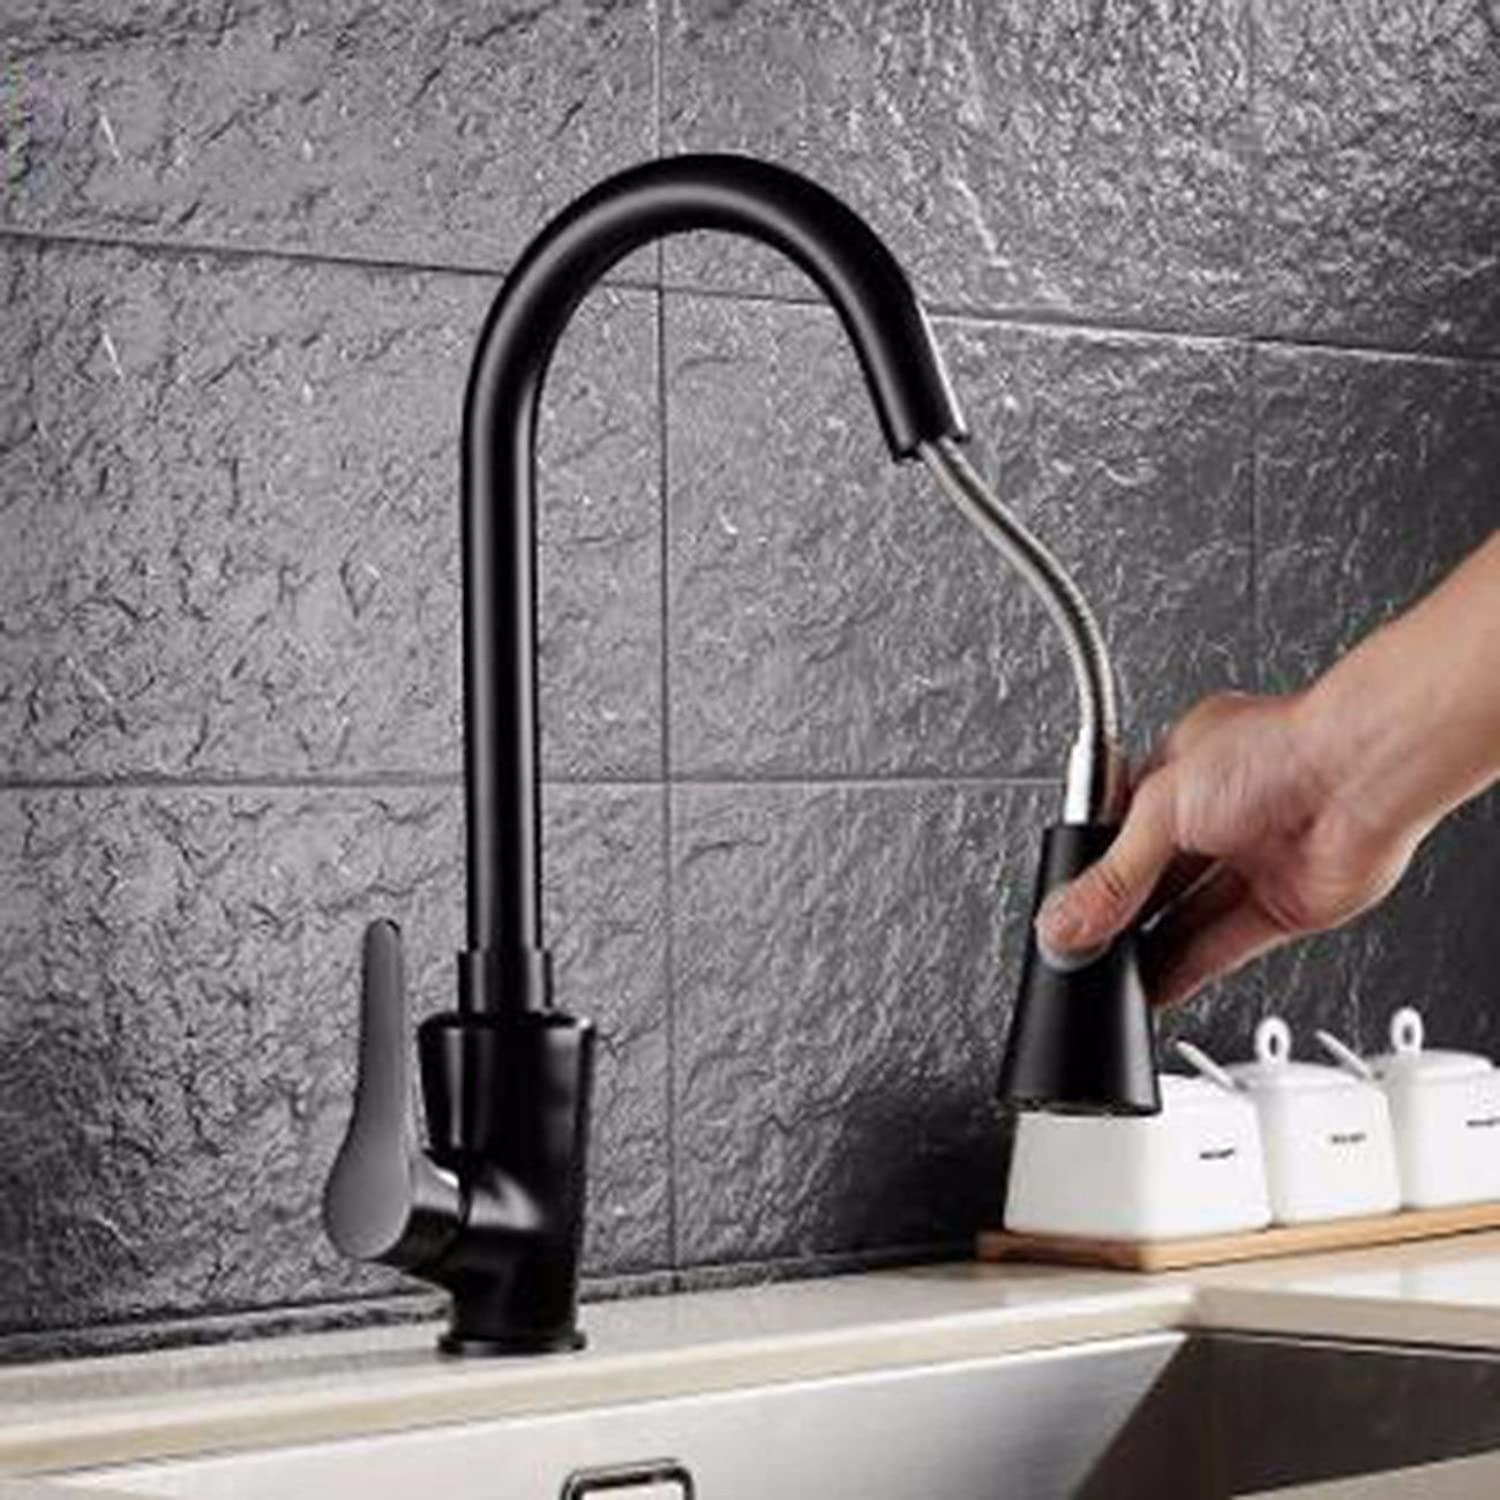 JFBZS-kitchen sink taps European Pull-Out Kitchen Faucet Dish Hot Water Faucet 360 Turn